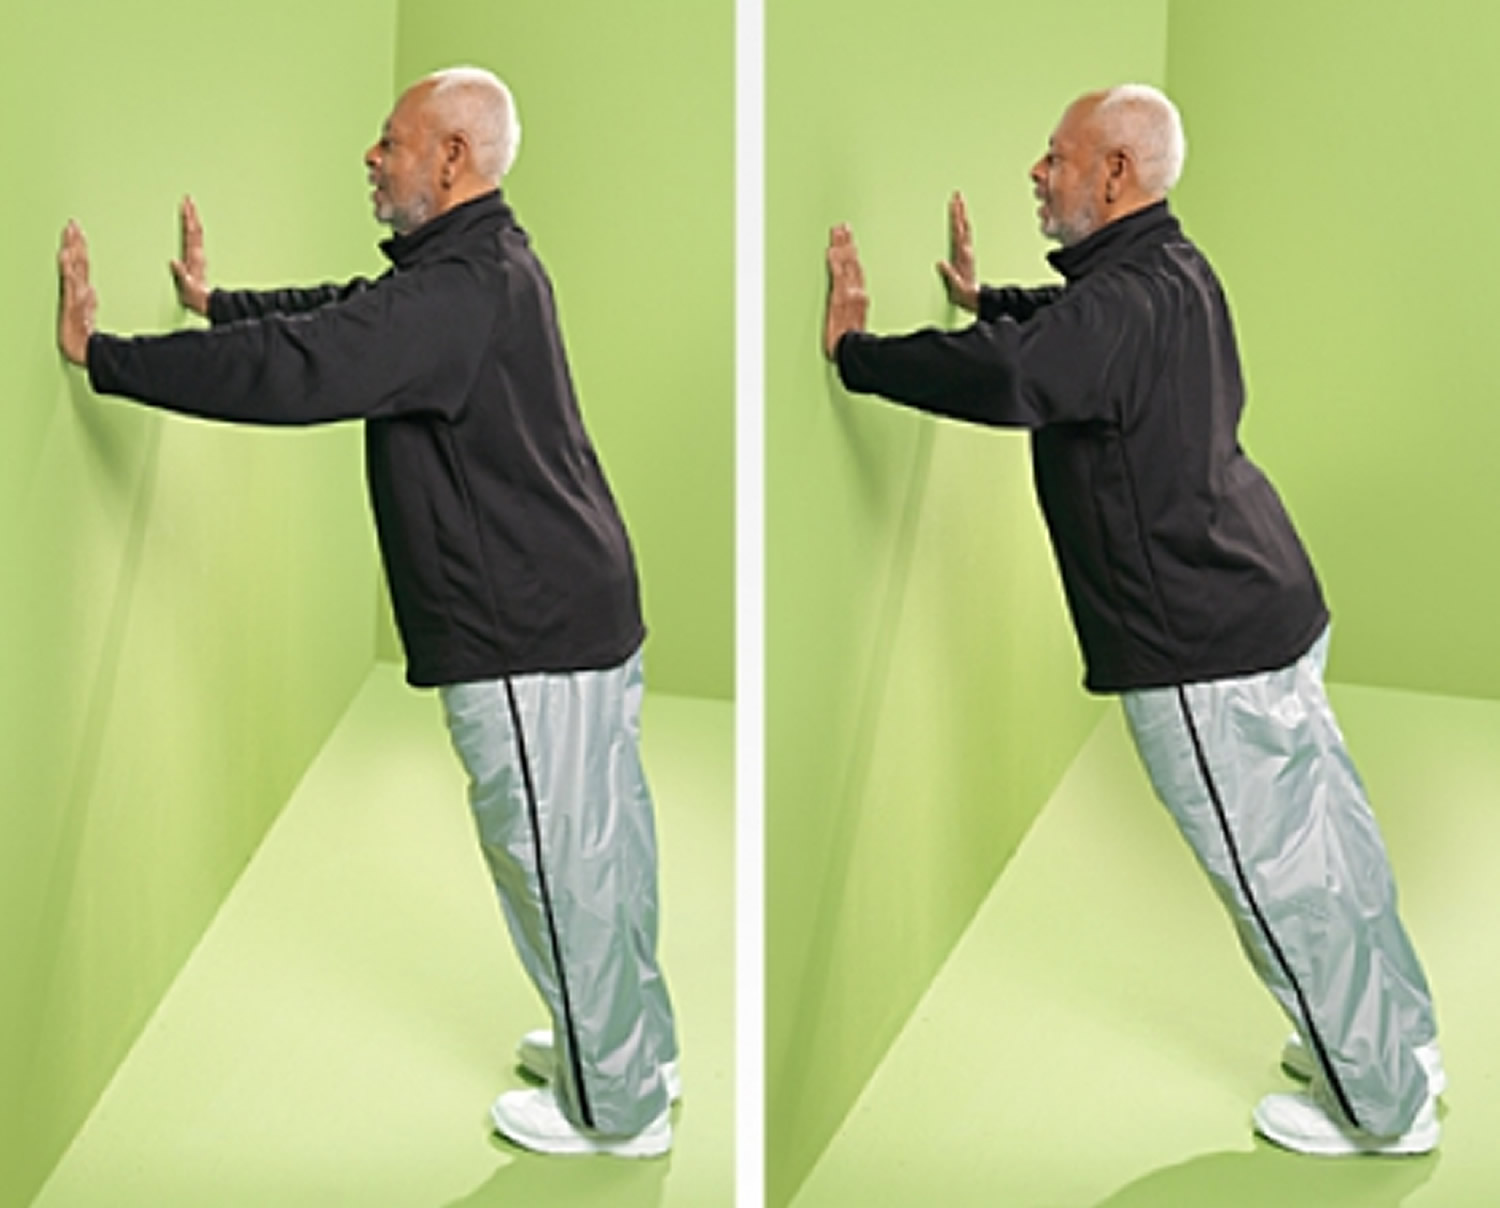 Wall Push-Up Strength Exercise for Seniors